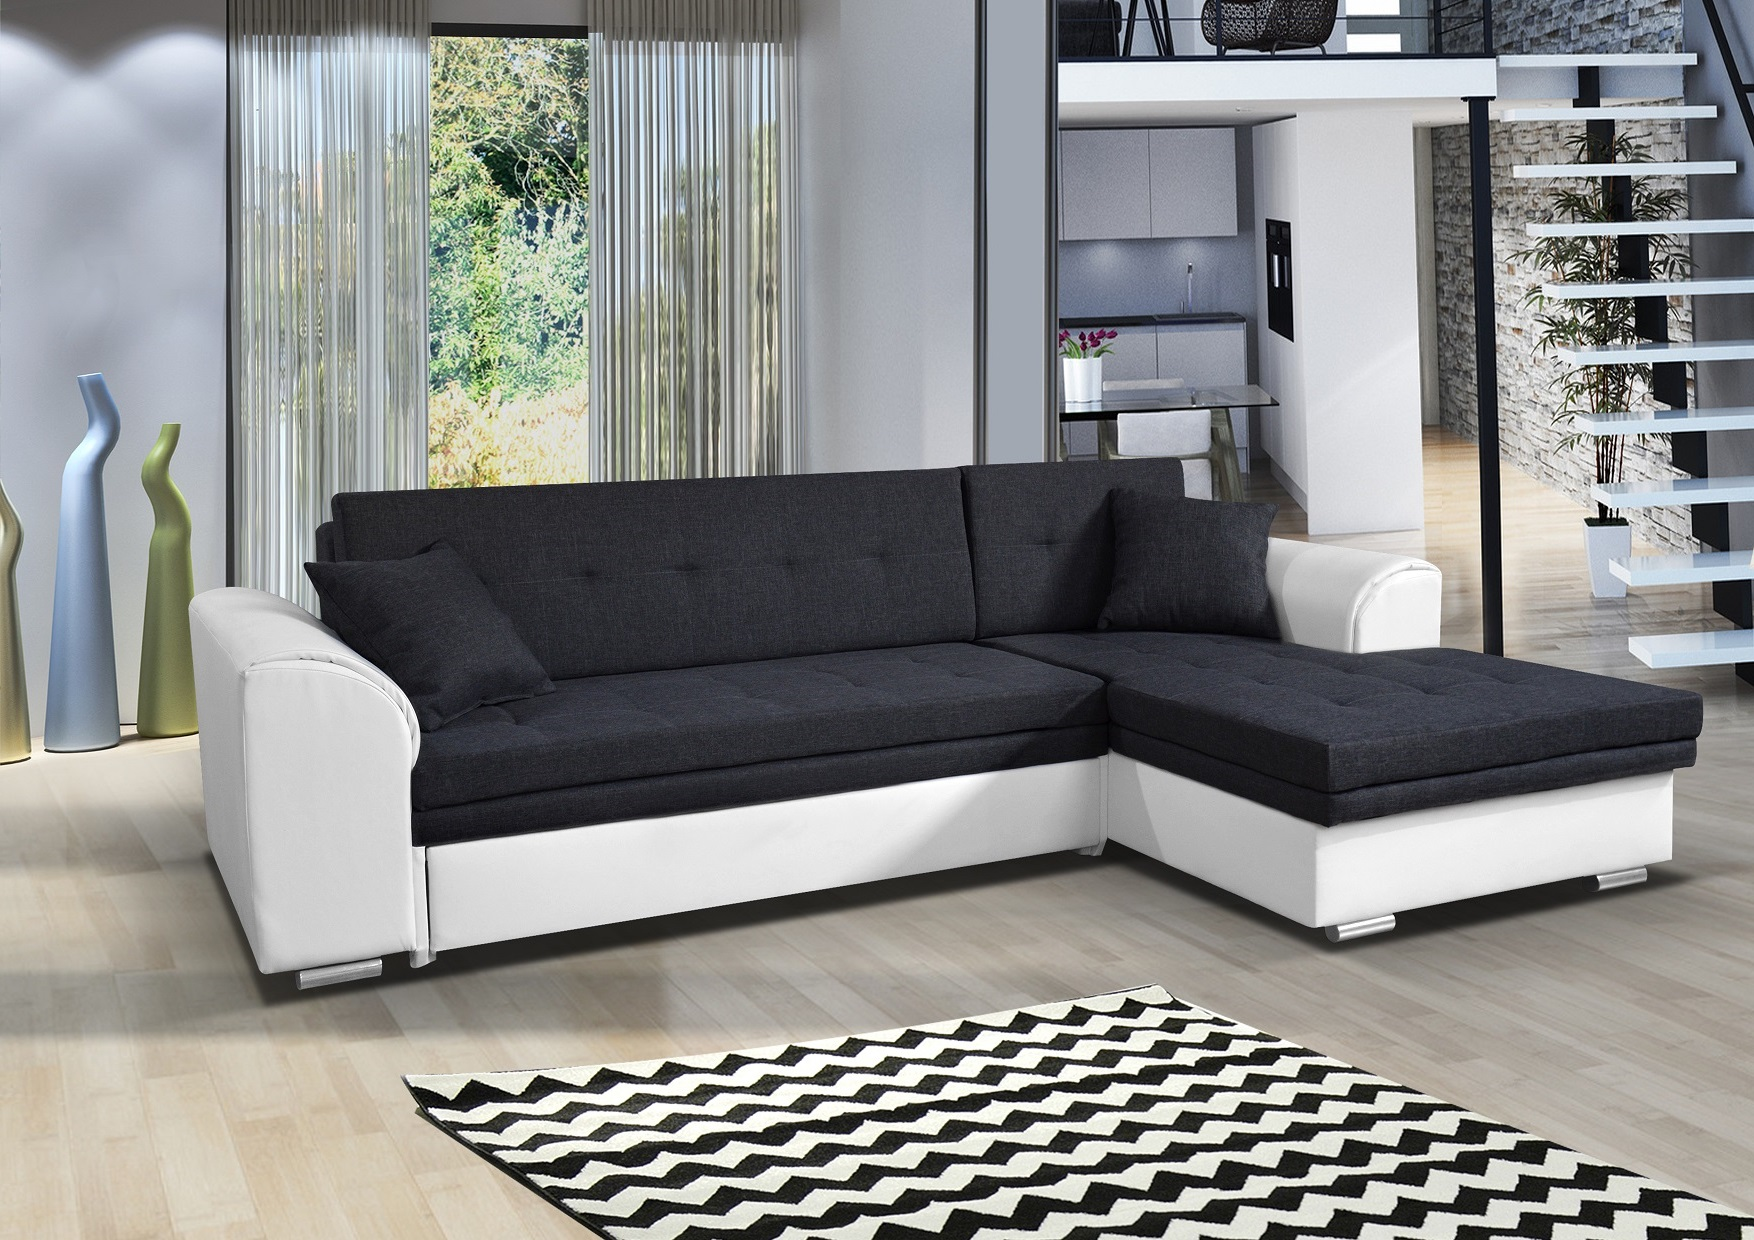 couchgarnitur kaja mini schwarz wei l form ebay. Black Bedroom Furniture Sets. Home Design Ideas